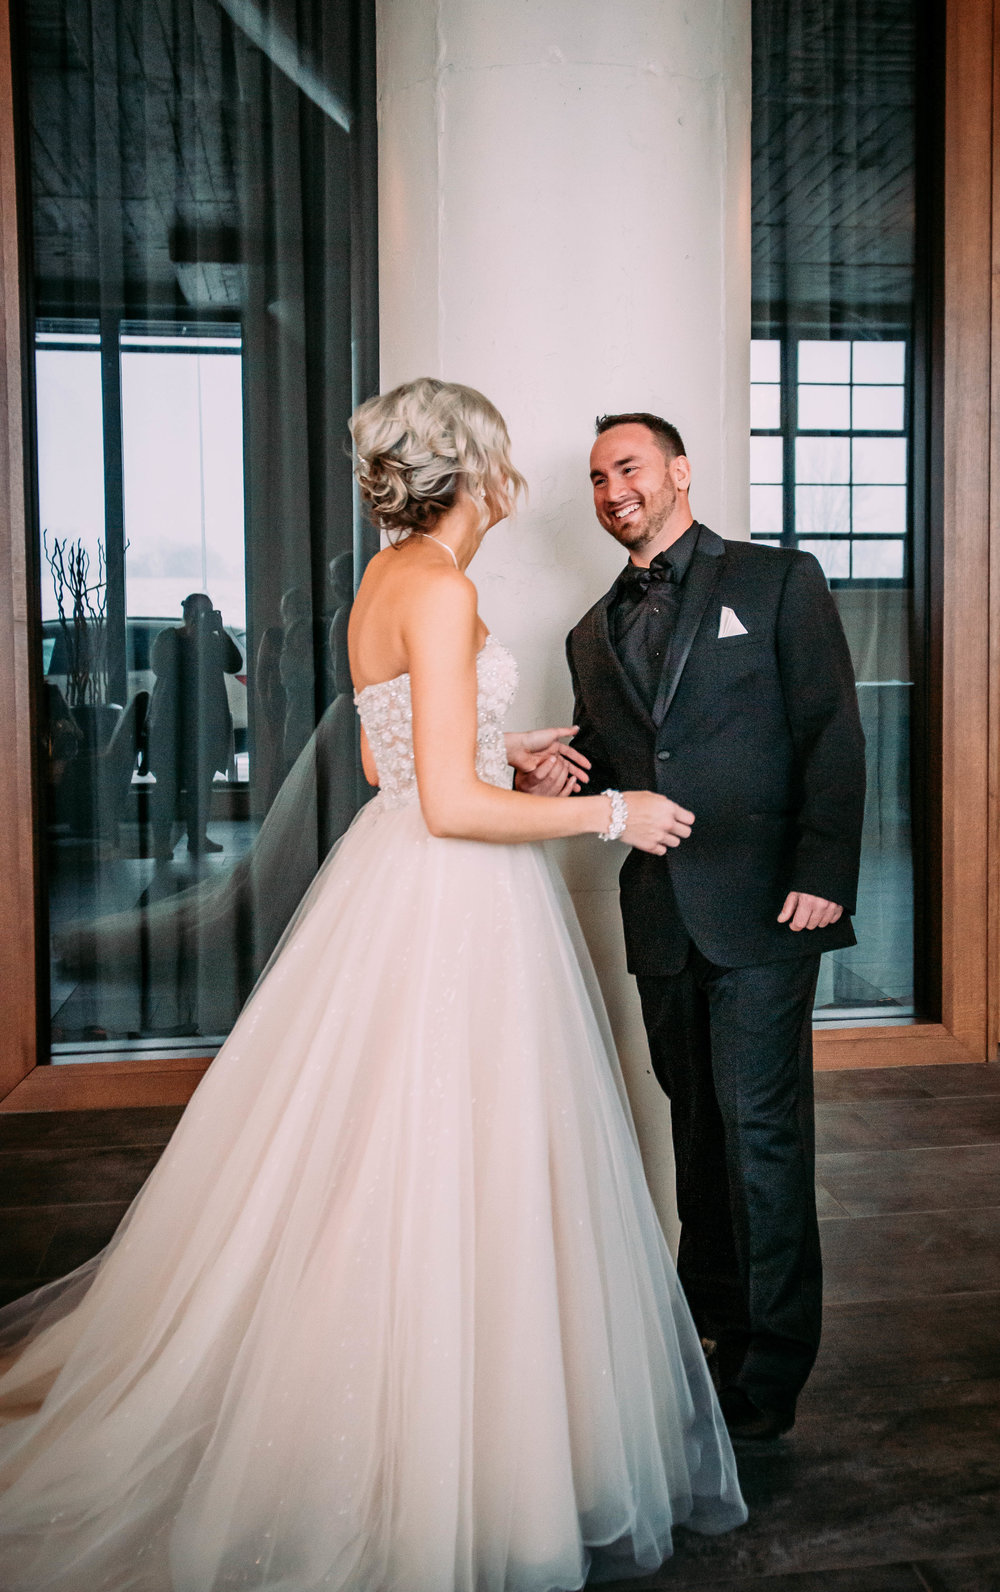 Wedding Gallery - Click to see them tie the knot.